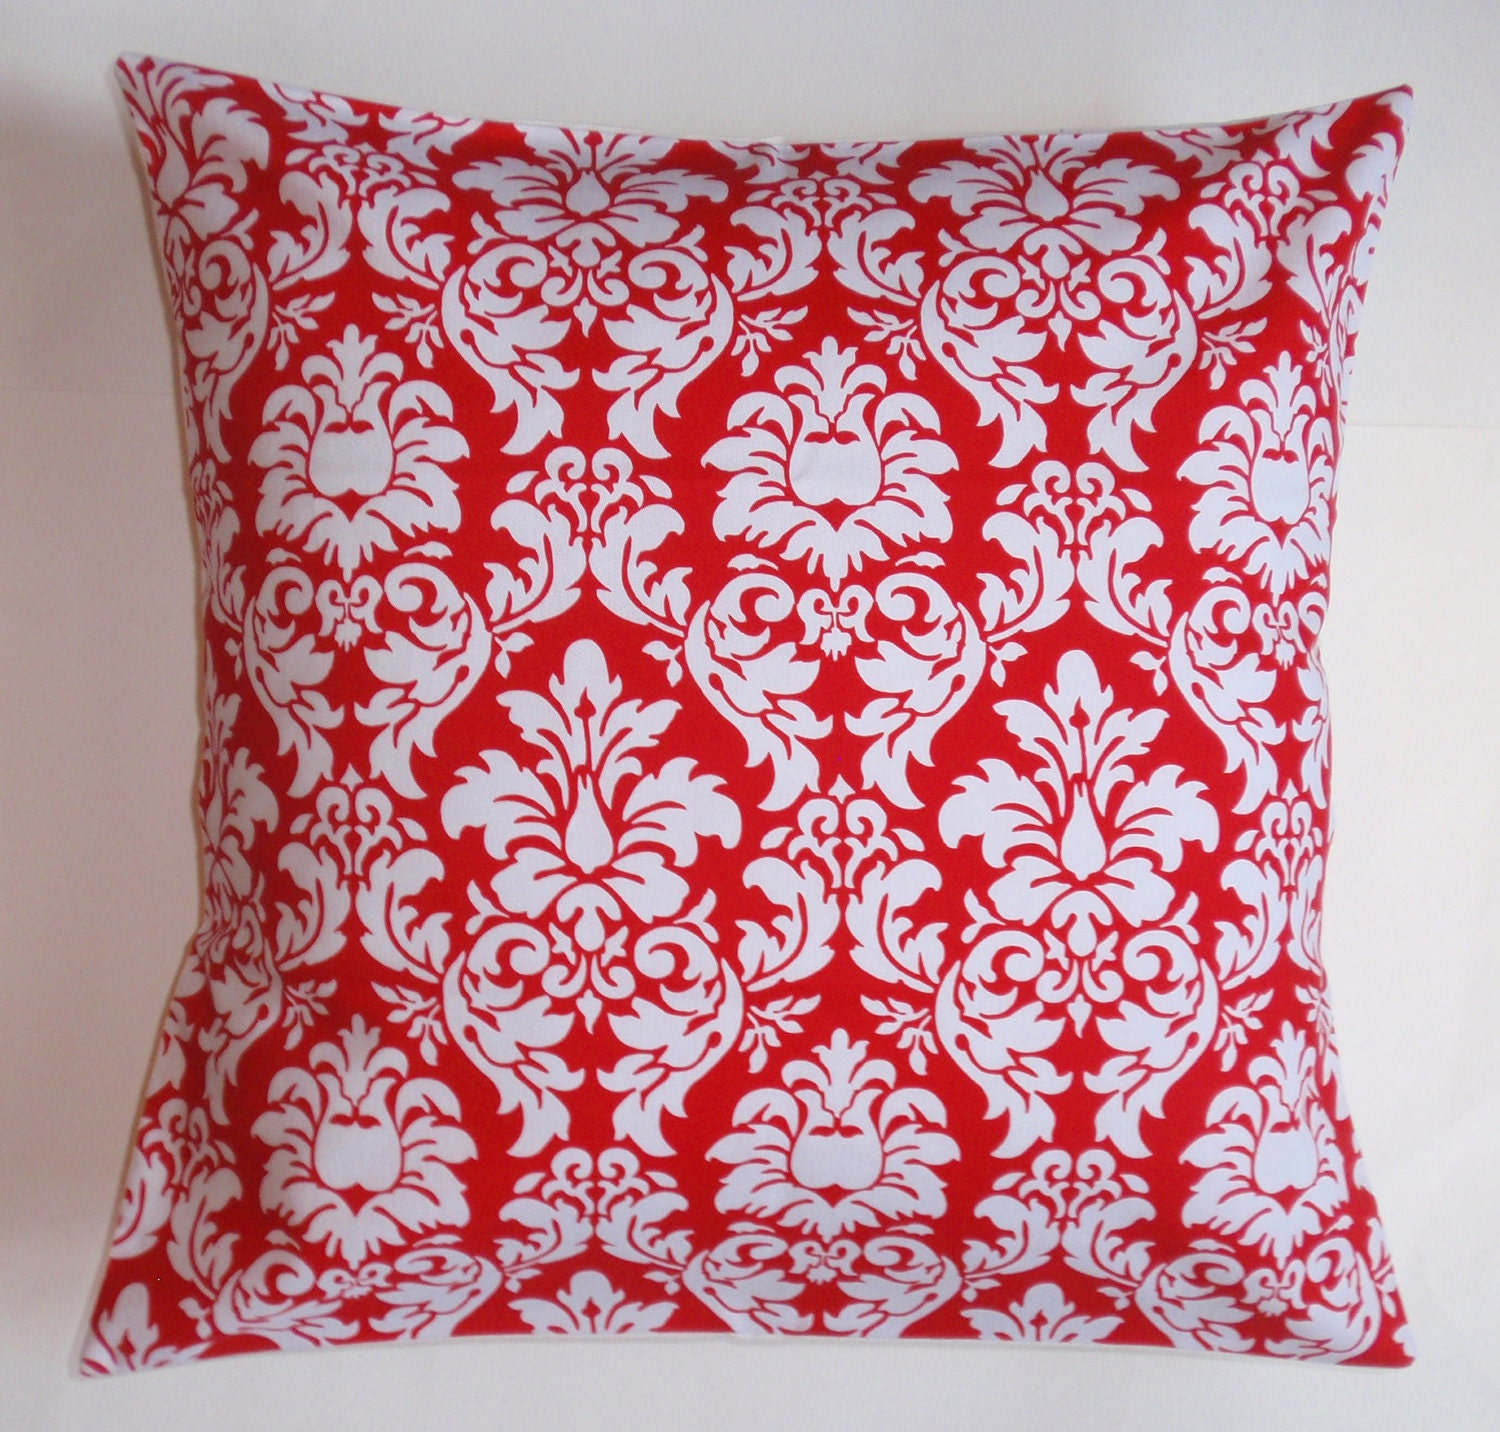 Handmade Throw Pillow Cover Candy Apple Red & White Dandy